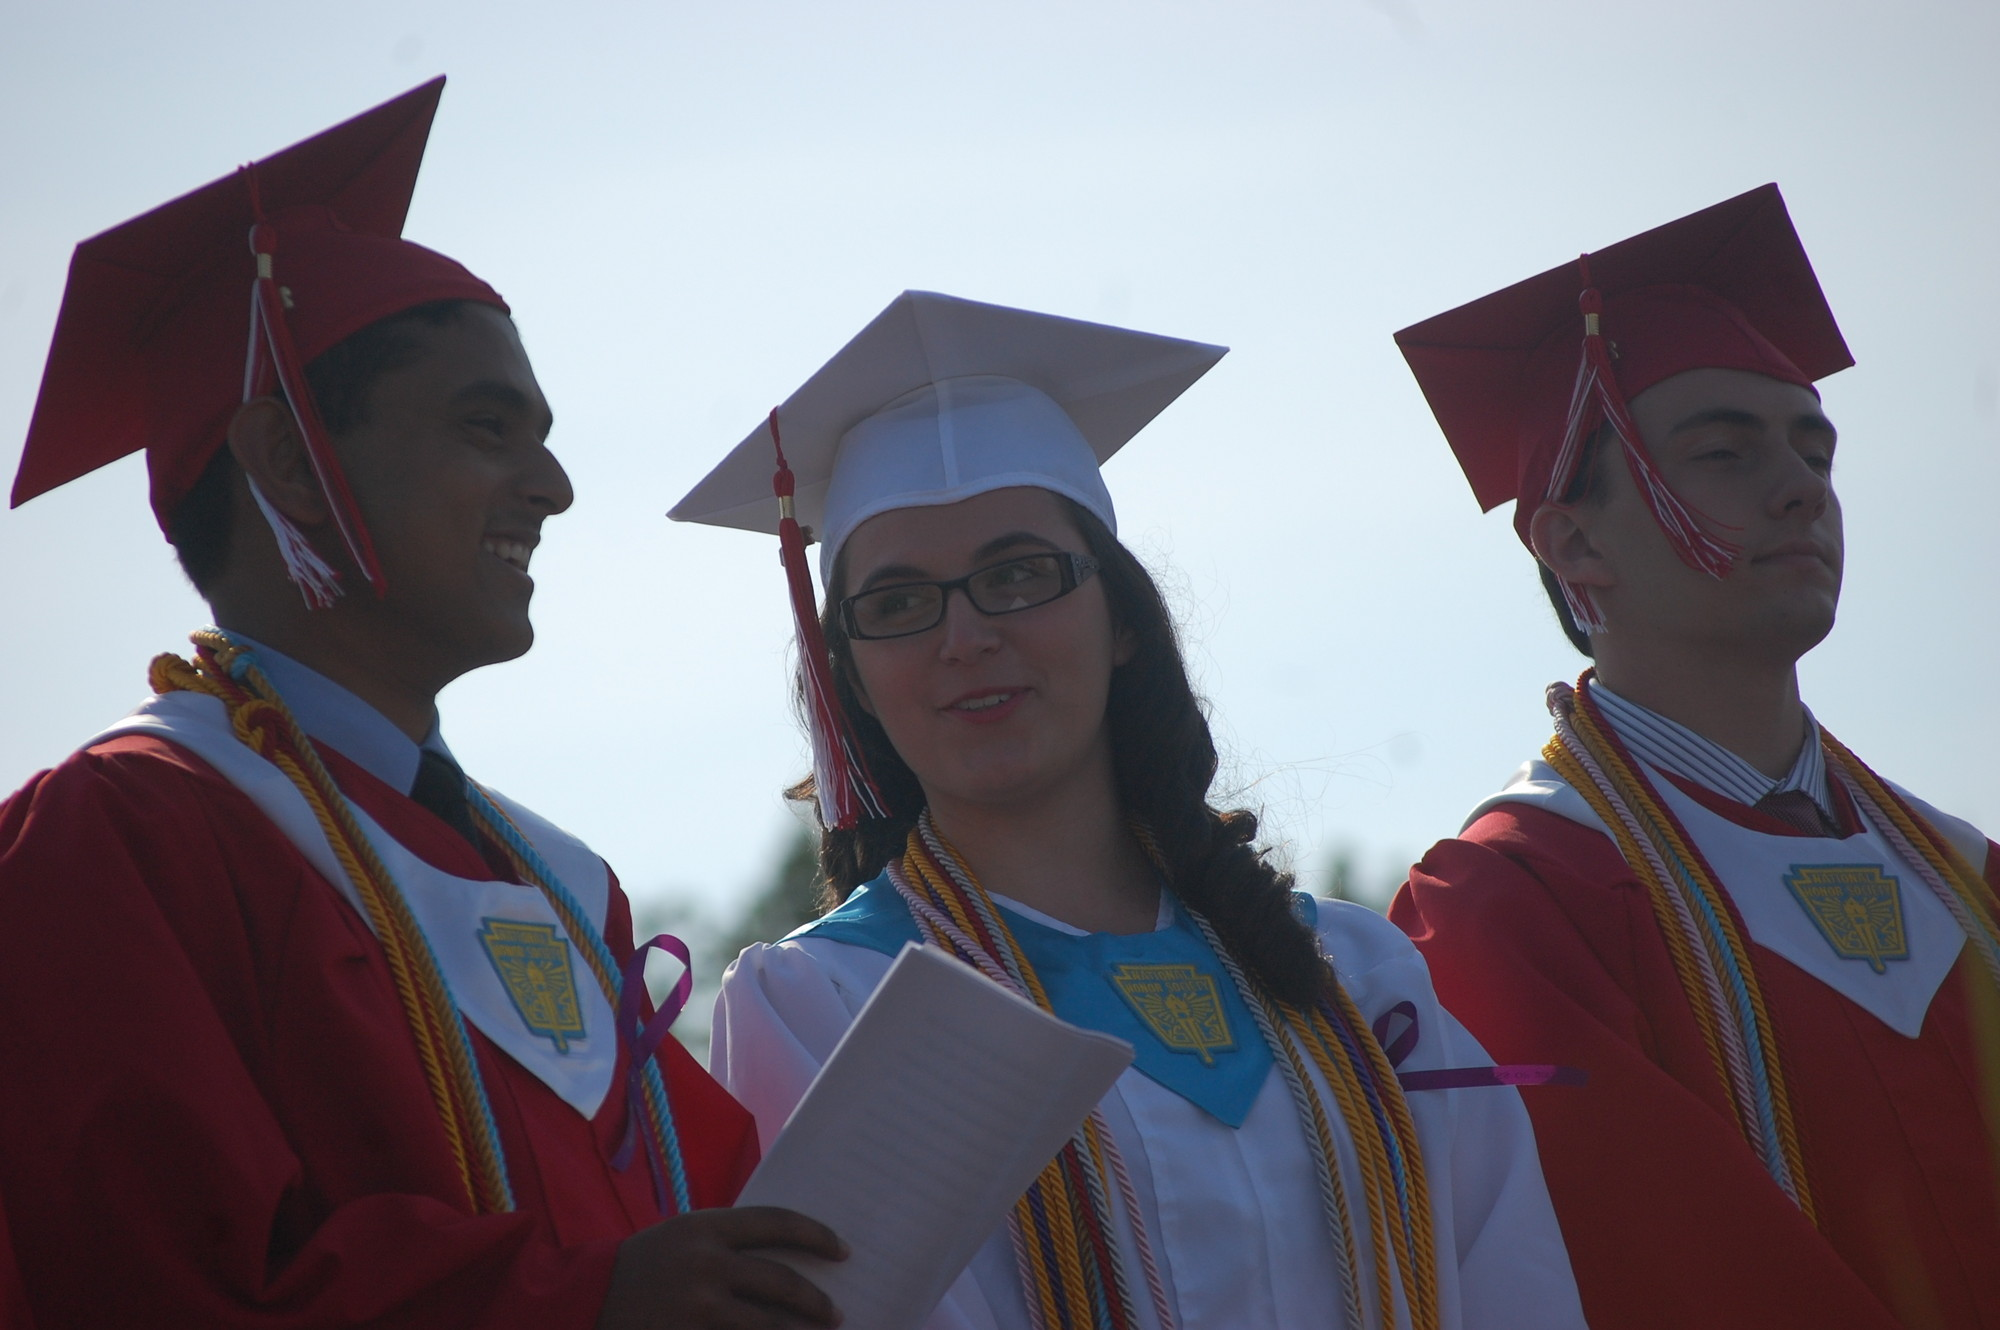 Class President Nihal Majumder, salutatorian Jeanne Powell and valedictorian Andrew Hess watch their fellow graduates arrive.